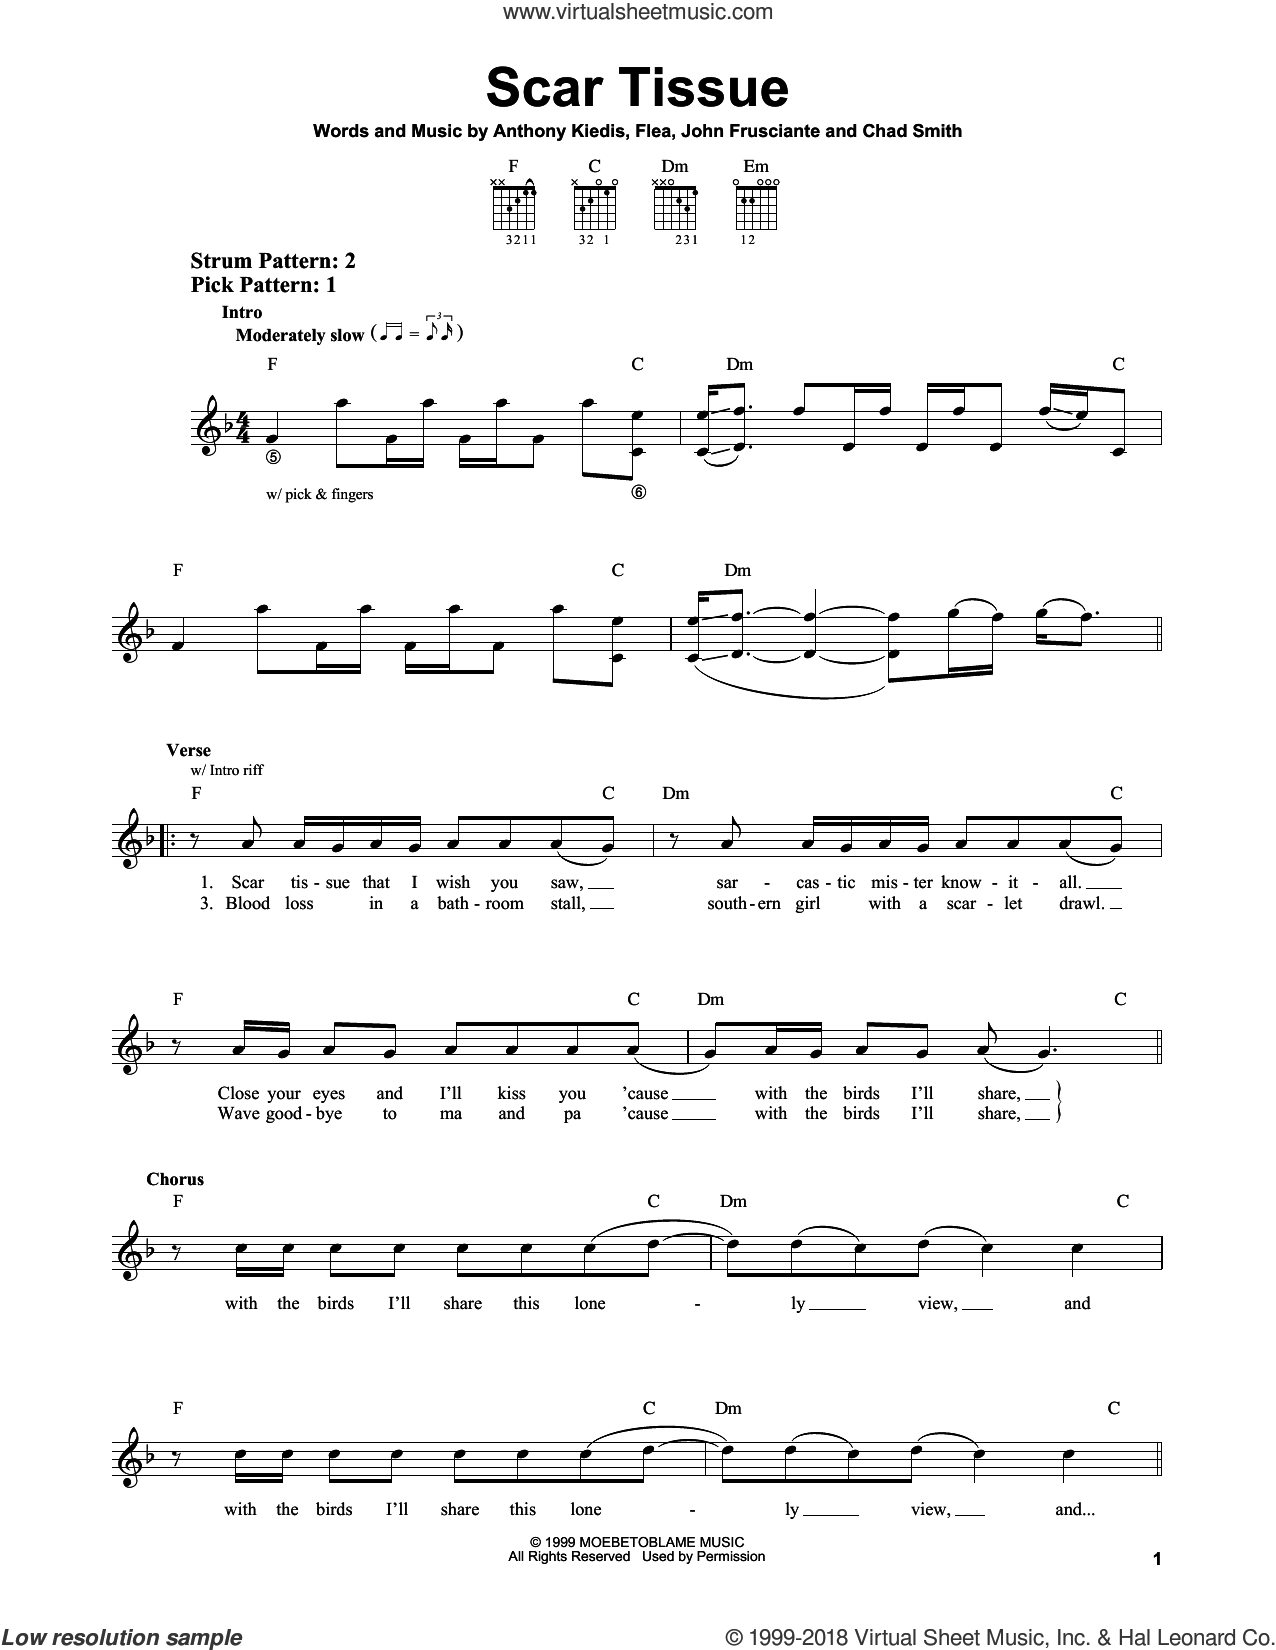 Scar Tissue sheet music for guitar solo (chords) by Red Hot Chili Peppers, Anthony Kiedis, Chad Smith, Flea and John Frusciante, easy guitar (chords)